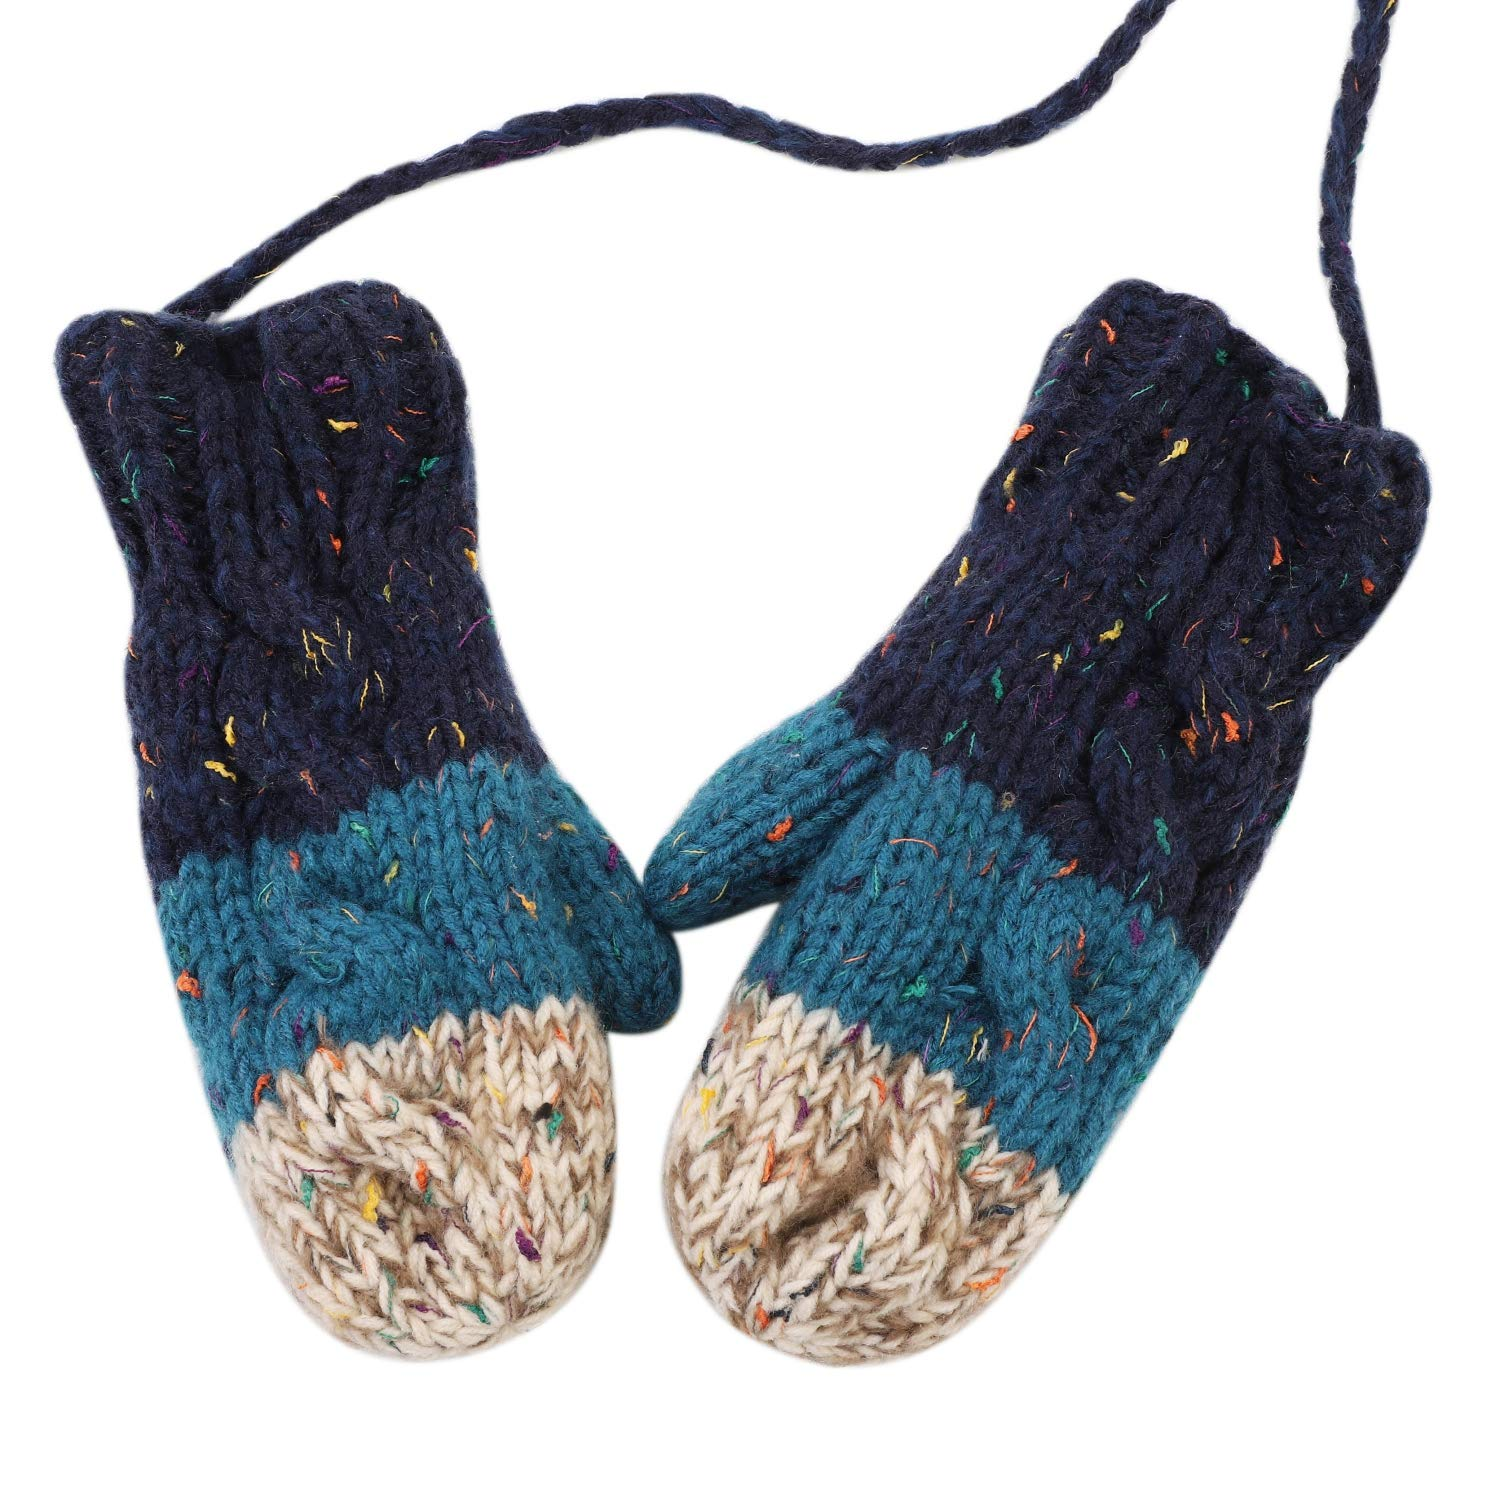 Girls Knitted Gloves with String Winter Fleece Lined Mittens Hanging Neck Full Finger Gloves Women Thicken Warm Mittens Birthday//Christmas//Xmas Gifts for Girls 8-16 Years Old